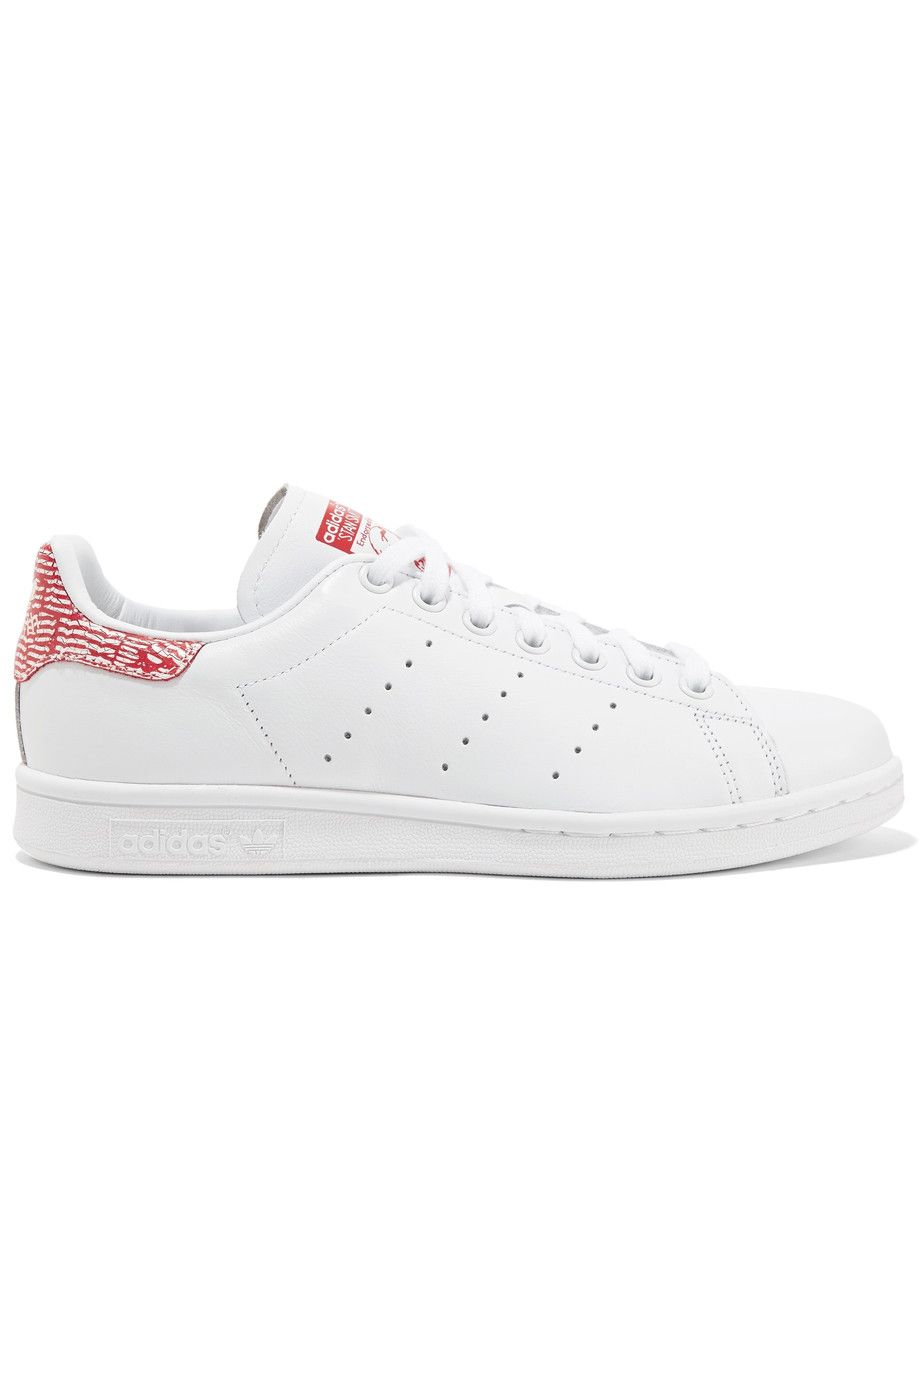 adidas stan smith adidasoriginals di cuoio originali